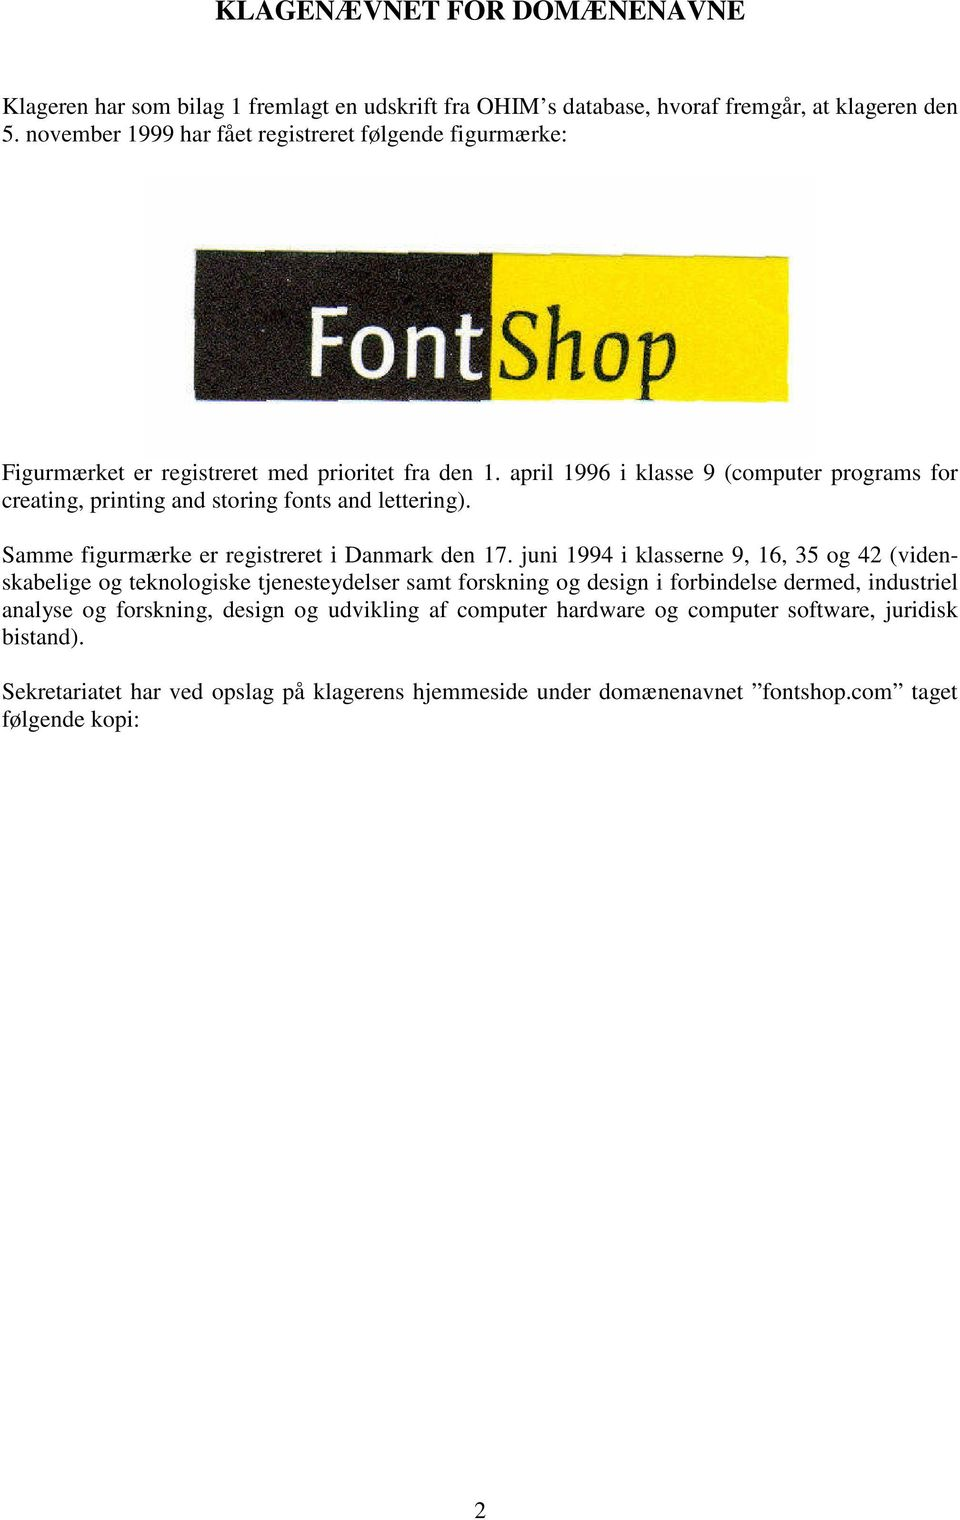 april 1996 i klasse 9 (computer programs for creating, printing and storing fonts and lettering). Samme figurmærke er registreret i Danmark den 17.